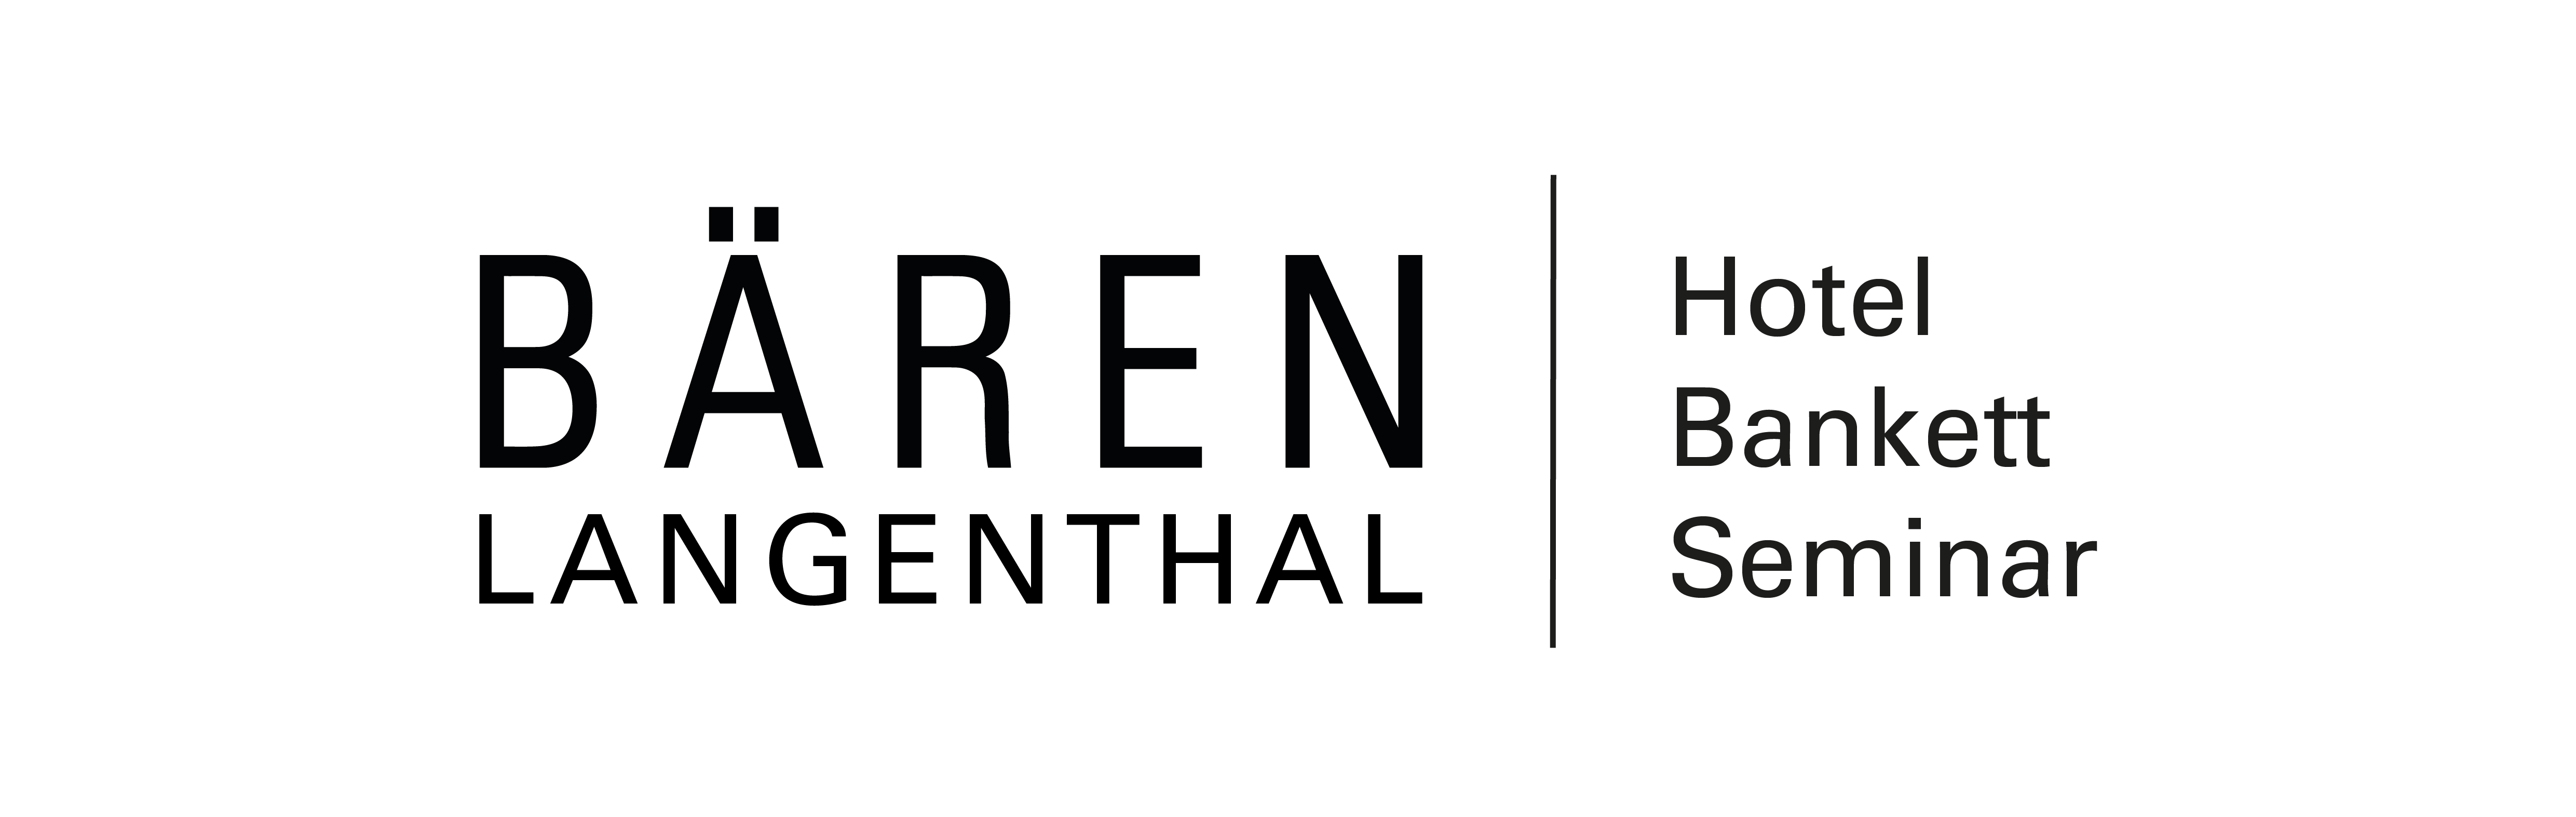 Horizontal Logo Hotel Baeren Langenthal Black on Transparent Background